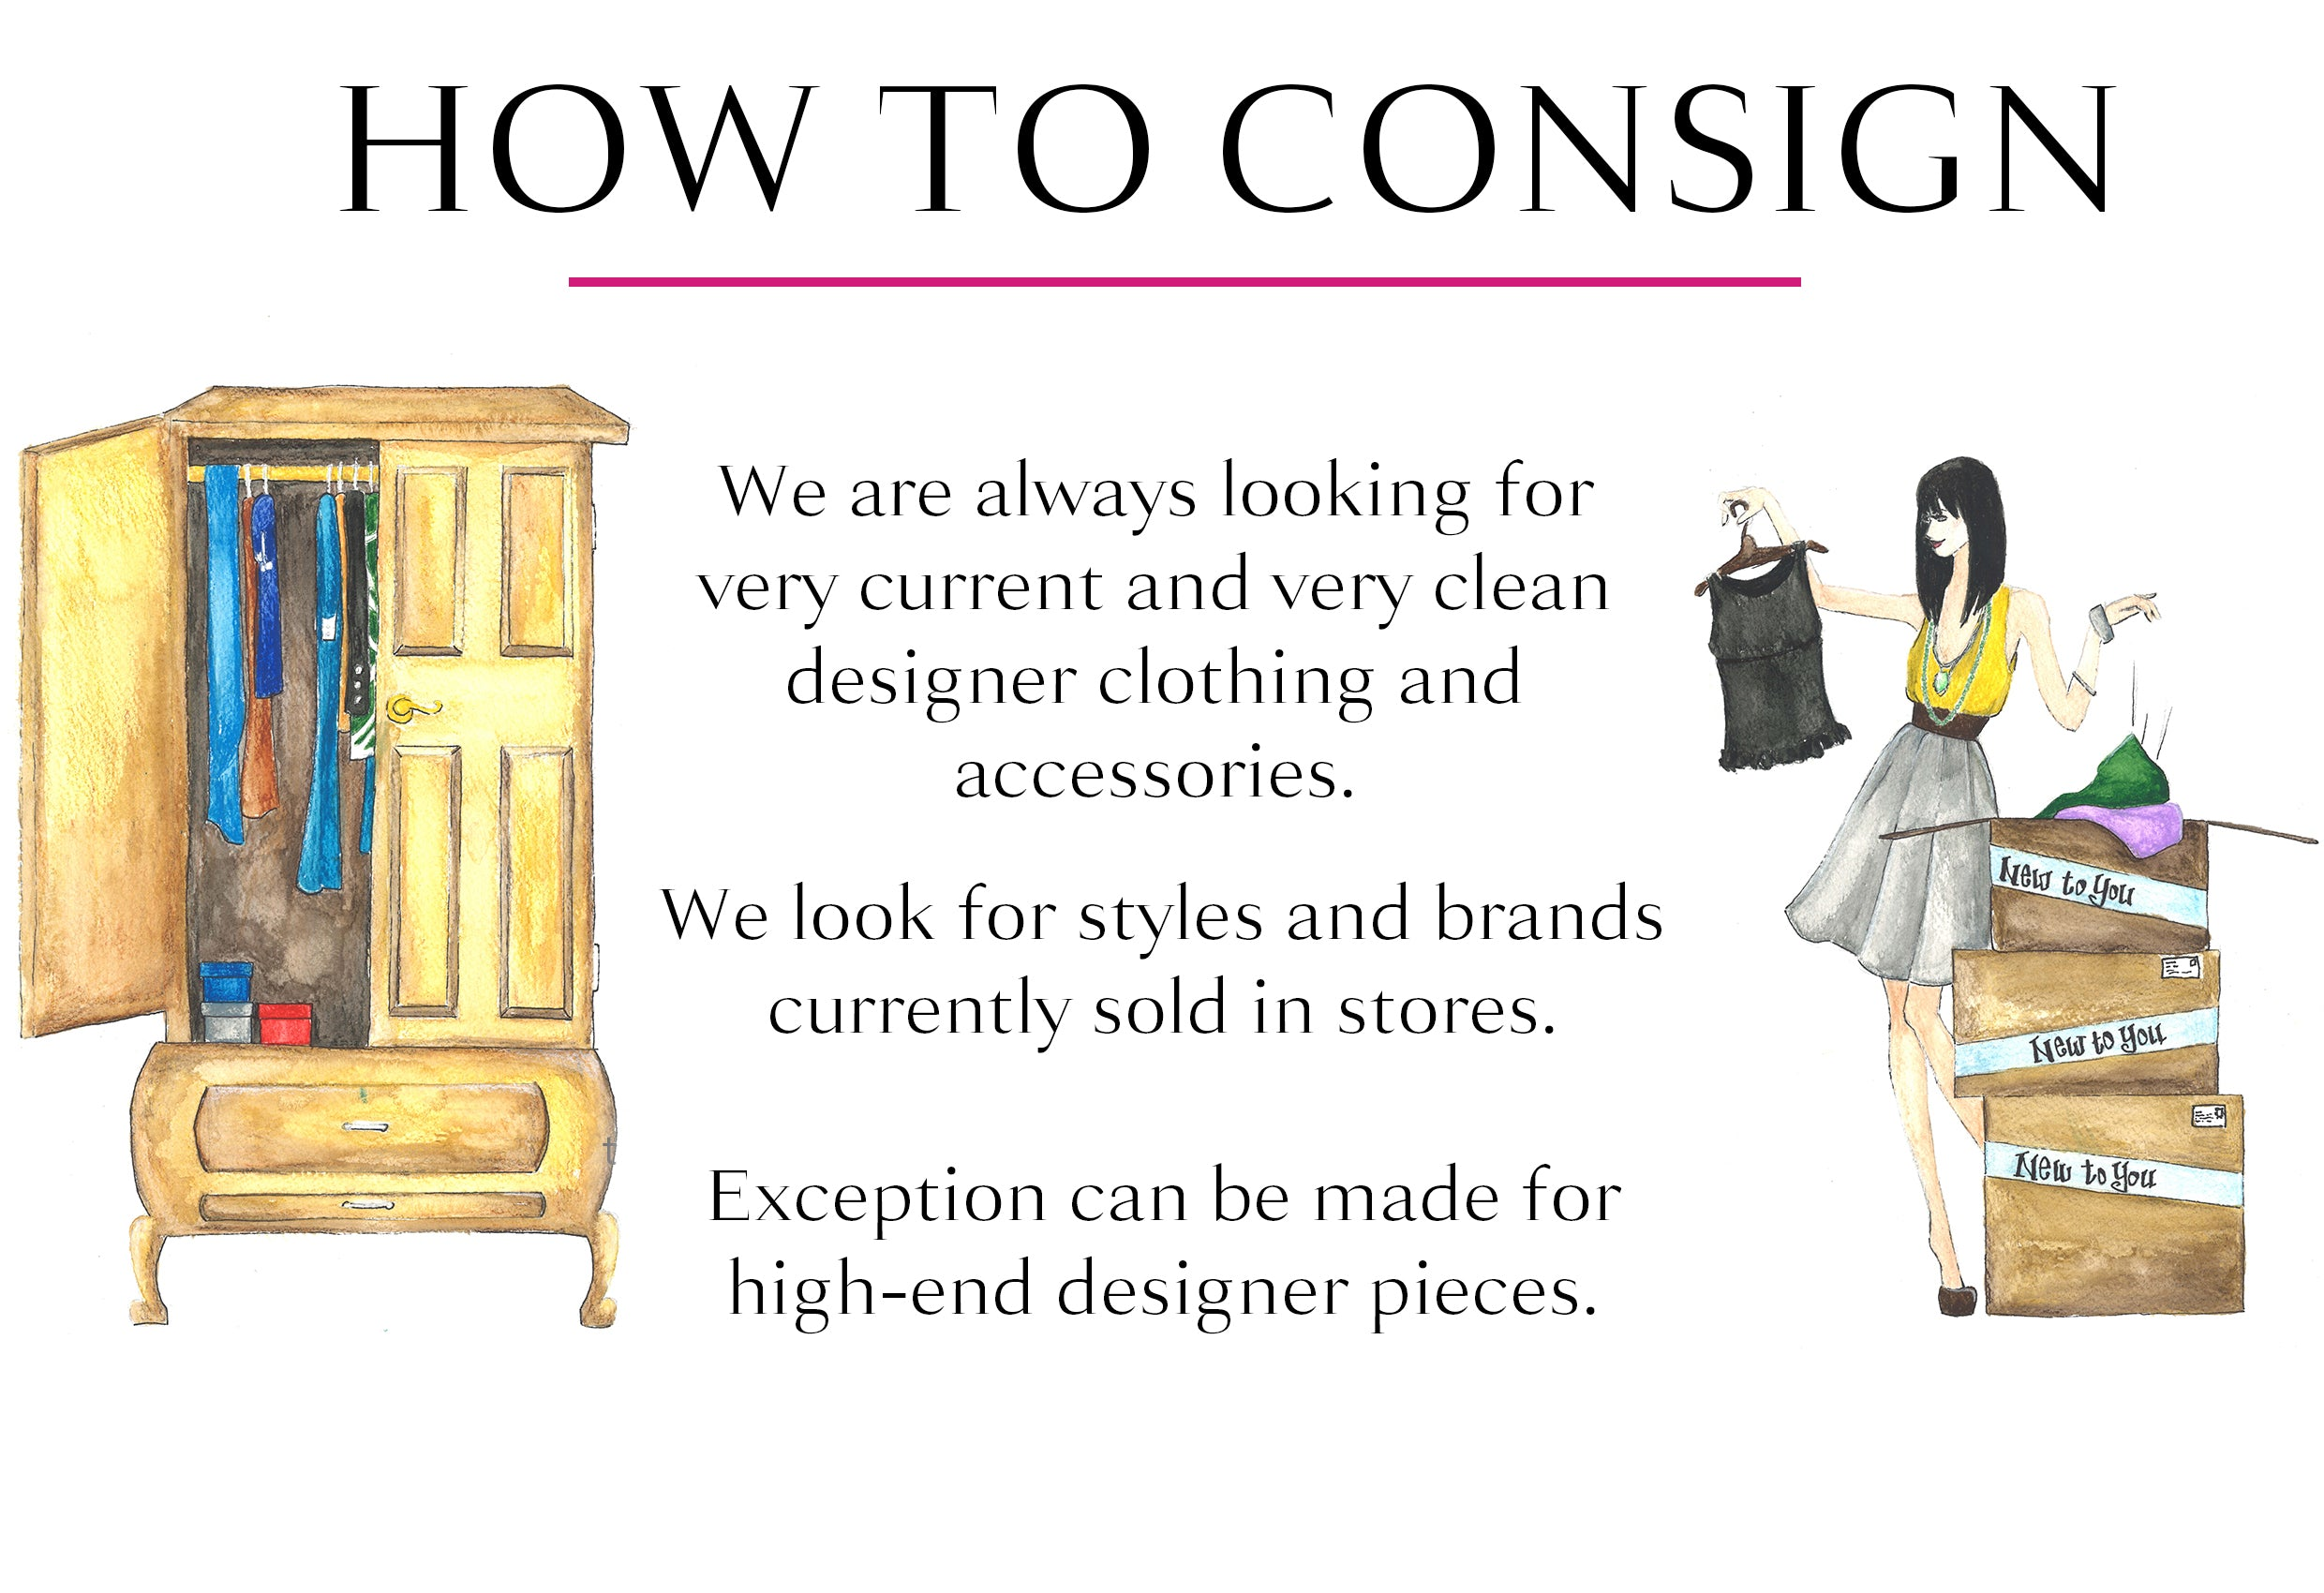 how to consign new to you inc pennsylvania